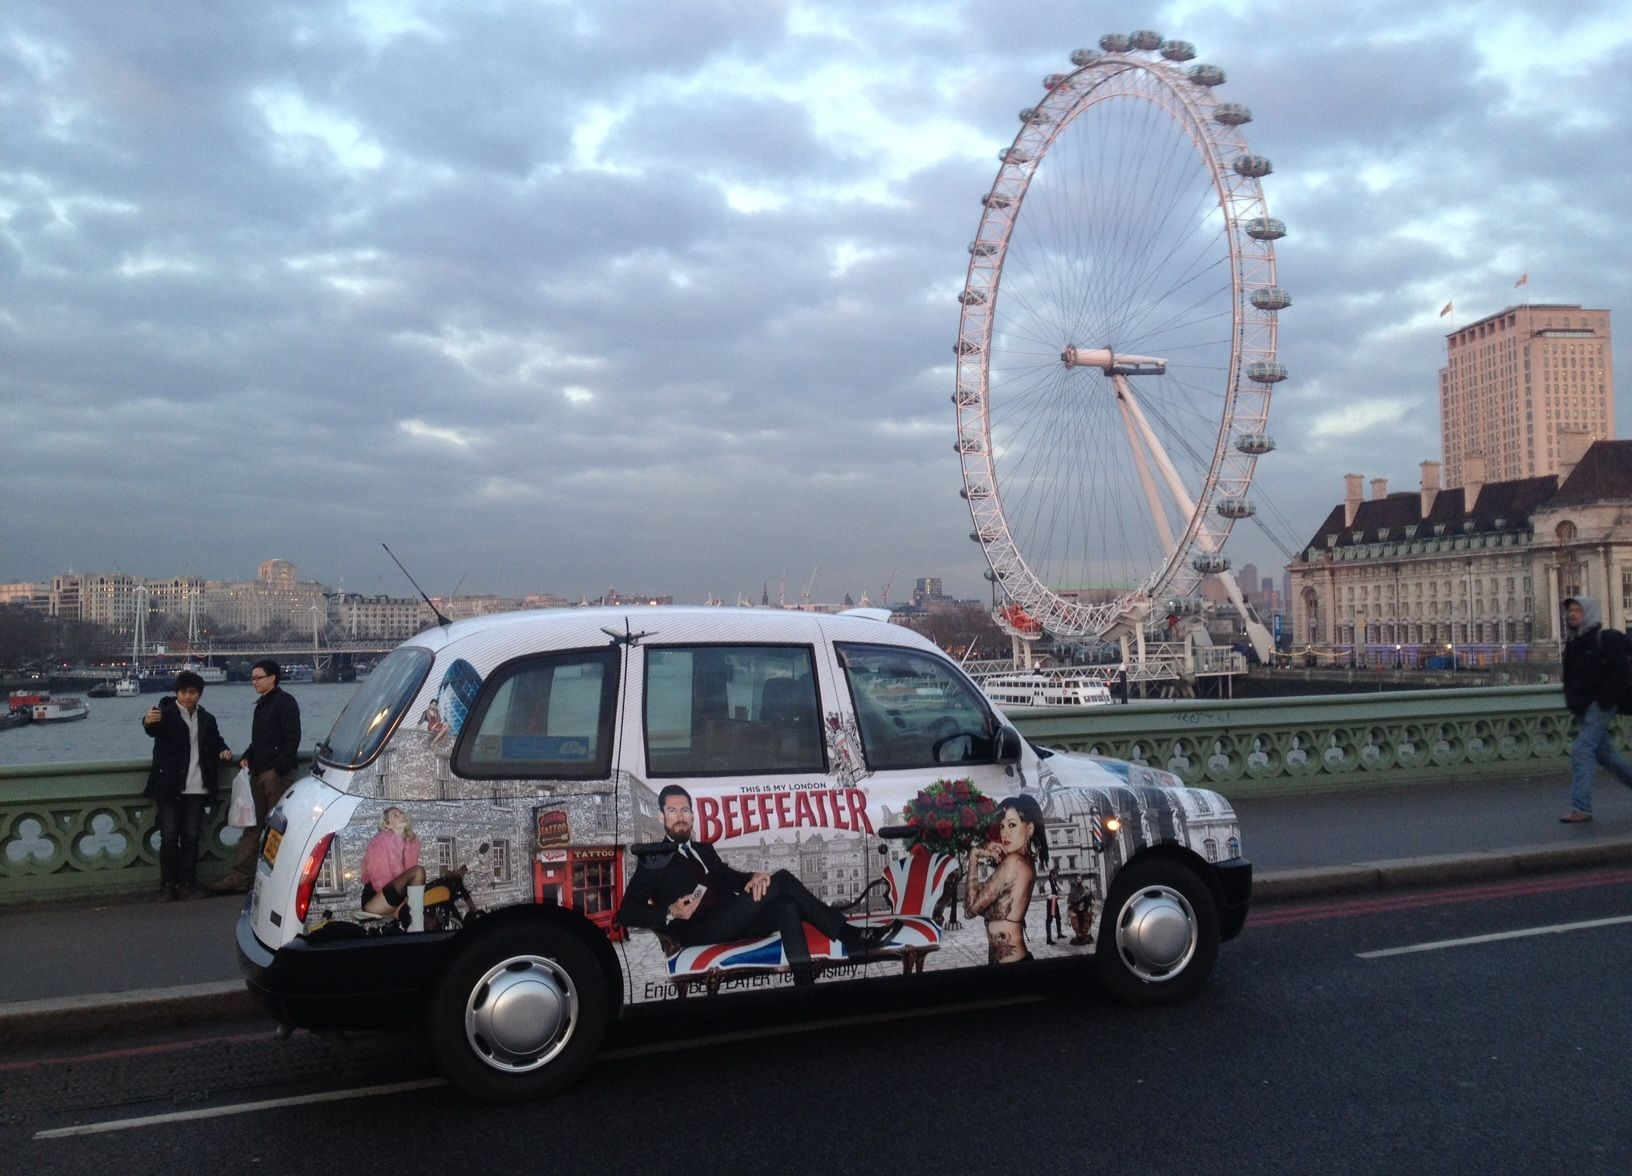 Taxi Advertising Campaigns Beefeater Gin Full Livery Taxi London Uk Taxi Advertising Outdoor Advertising London Taxi